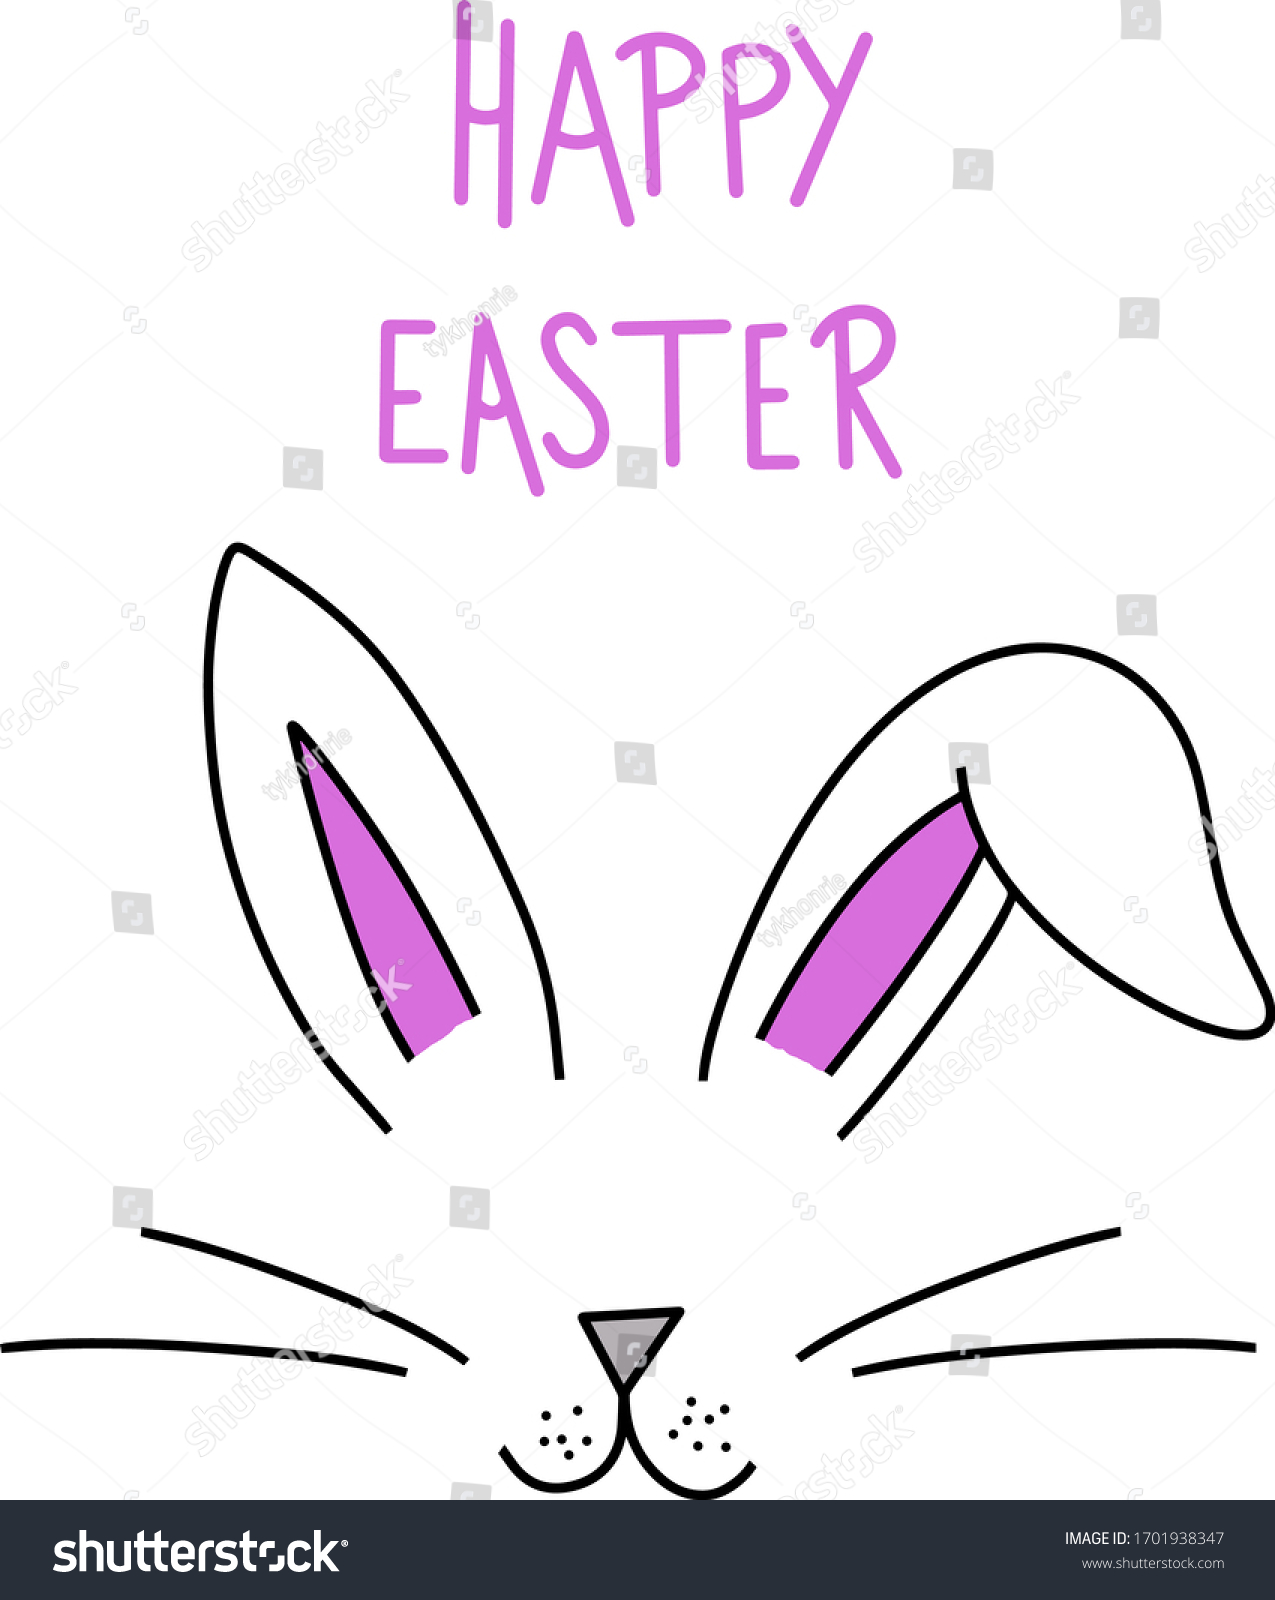 stock-vector-happy-easter-day-simple-let